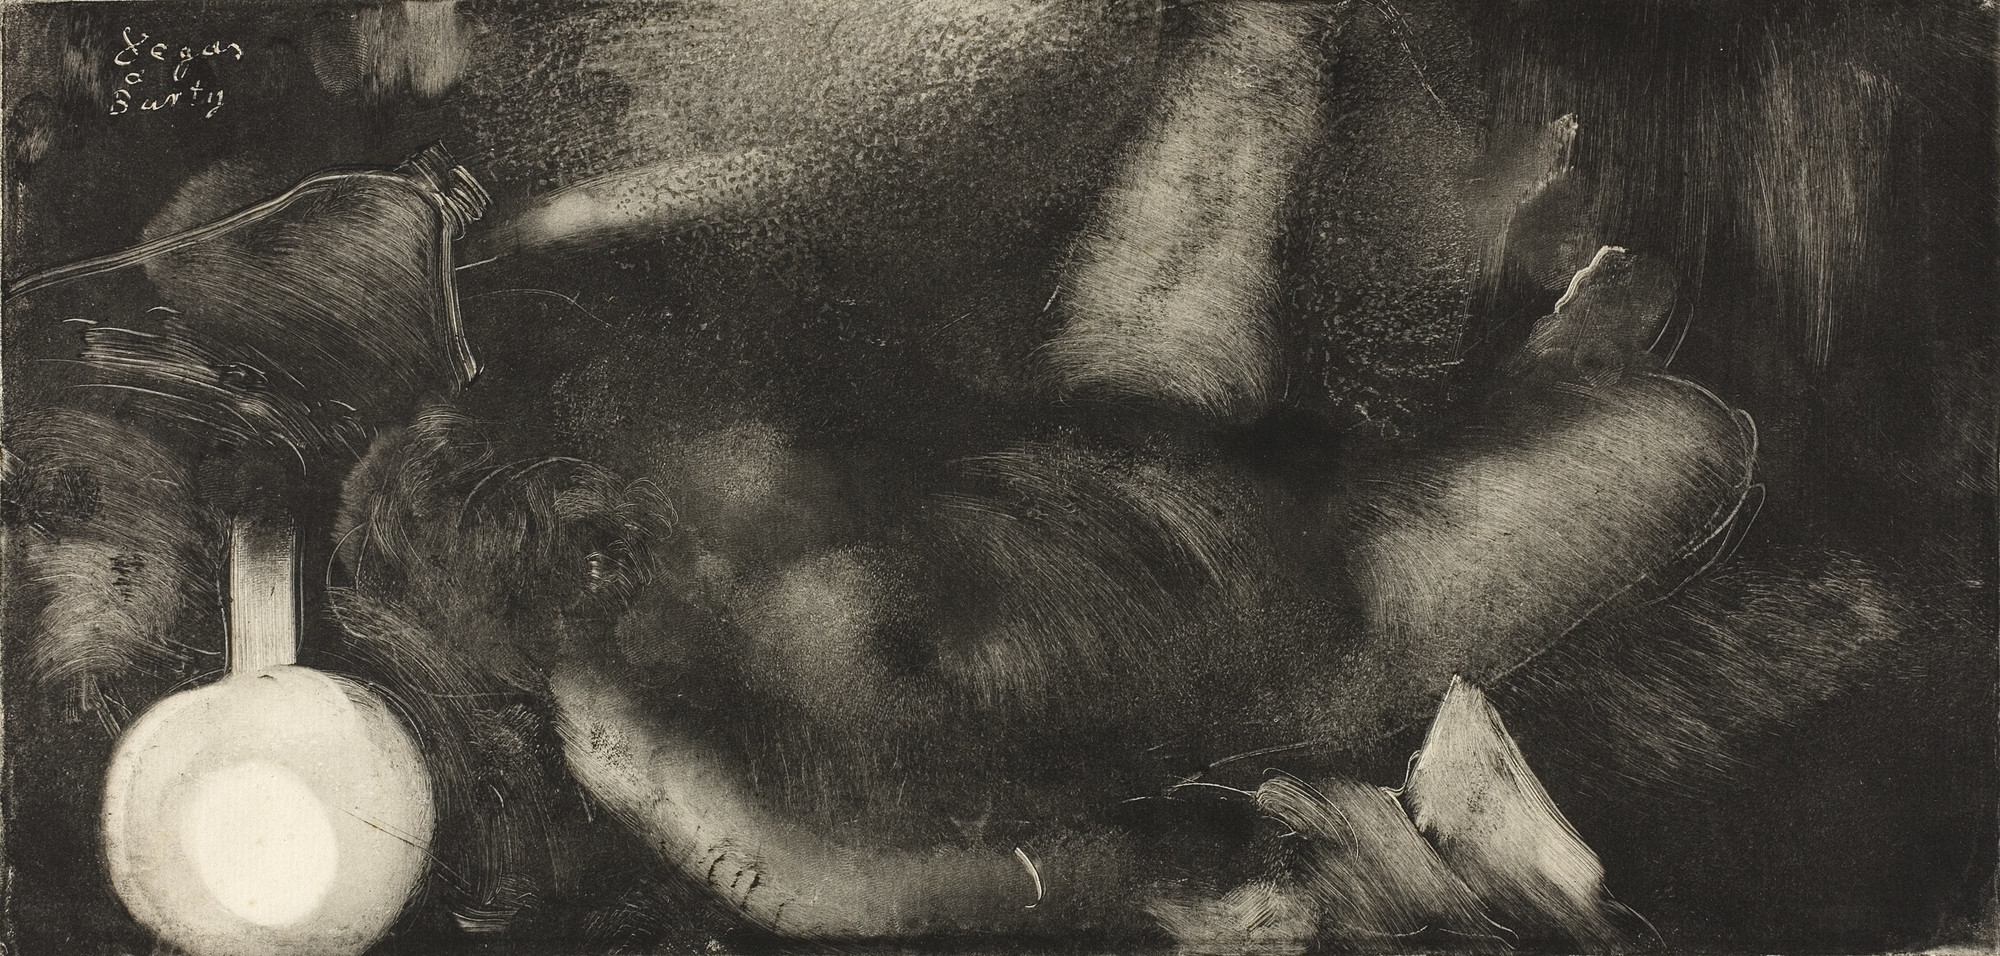 Edgar Degas, Woman Reclining on Her Bed (Femme étendue sur son lit), 1879–83, The Art Institute of Chicago, Chicago, IL, USA.